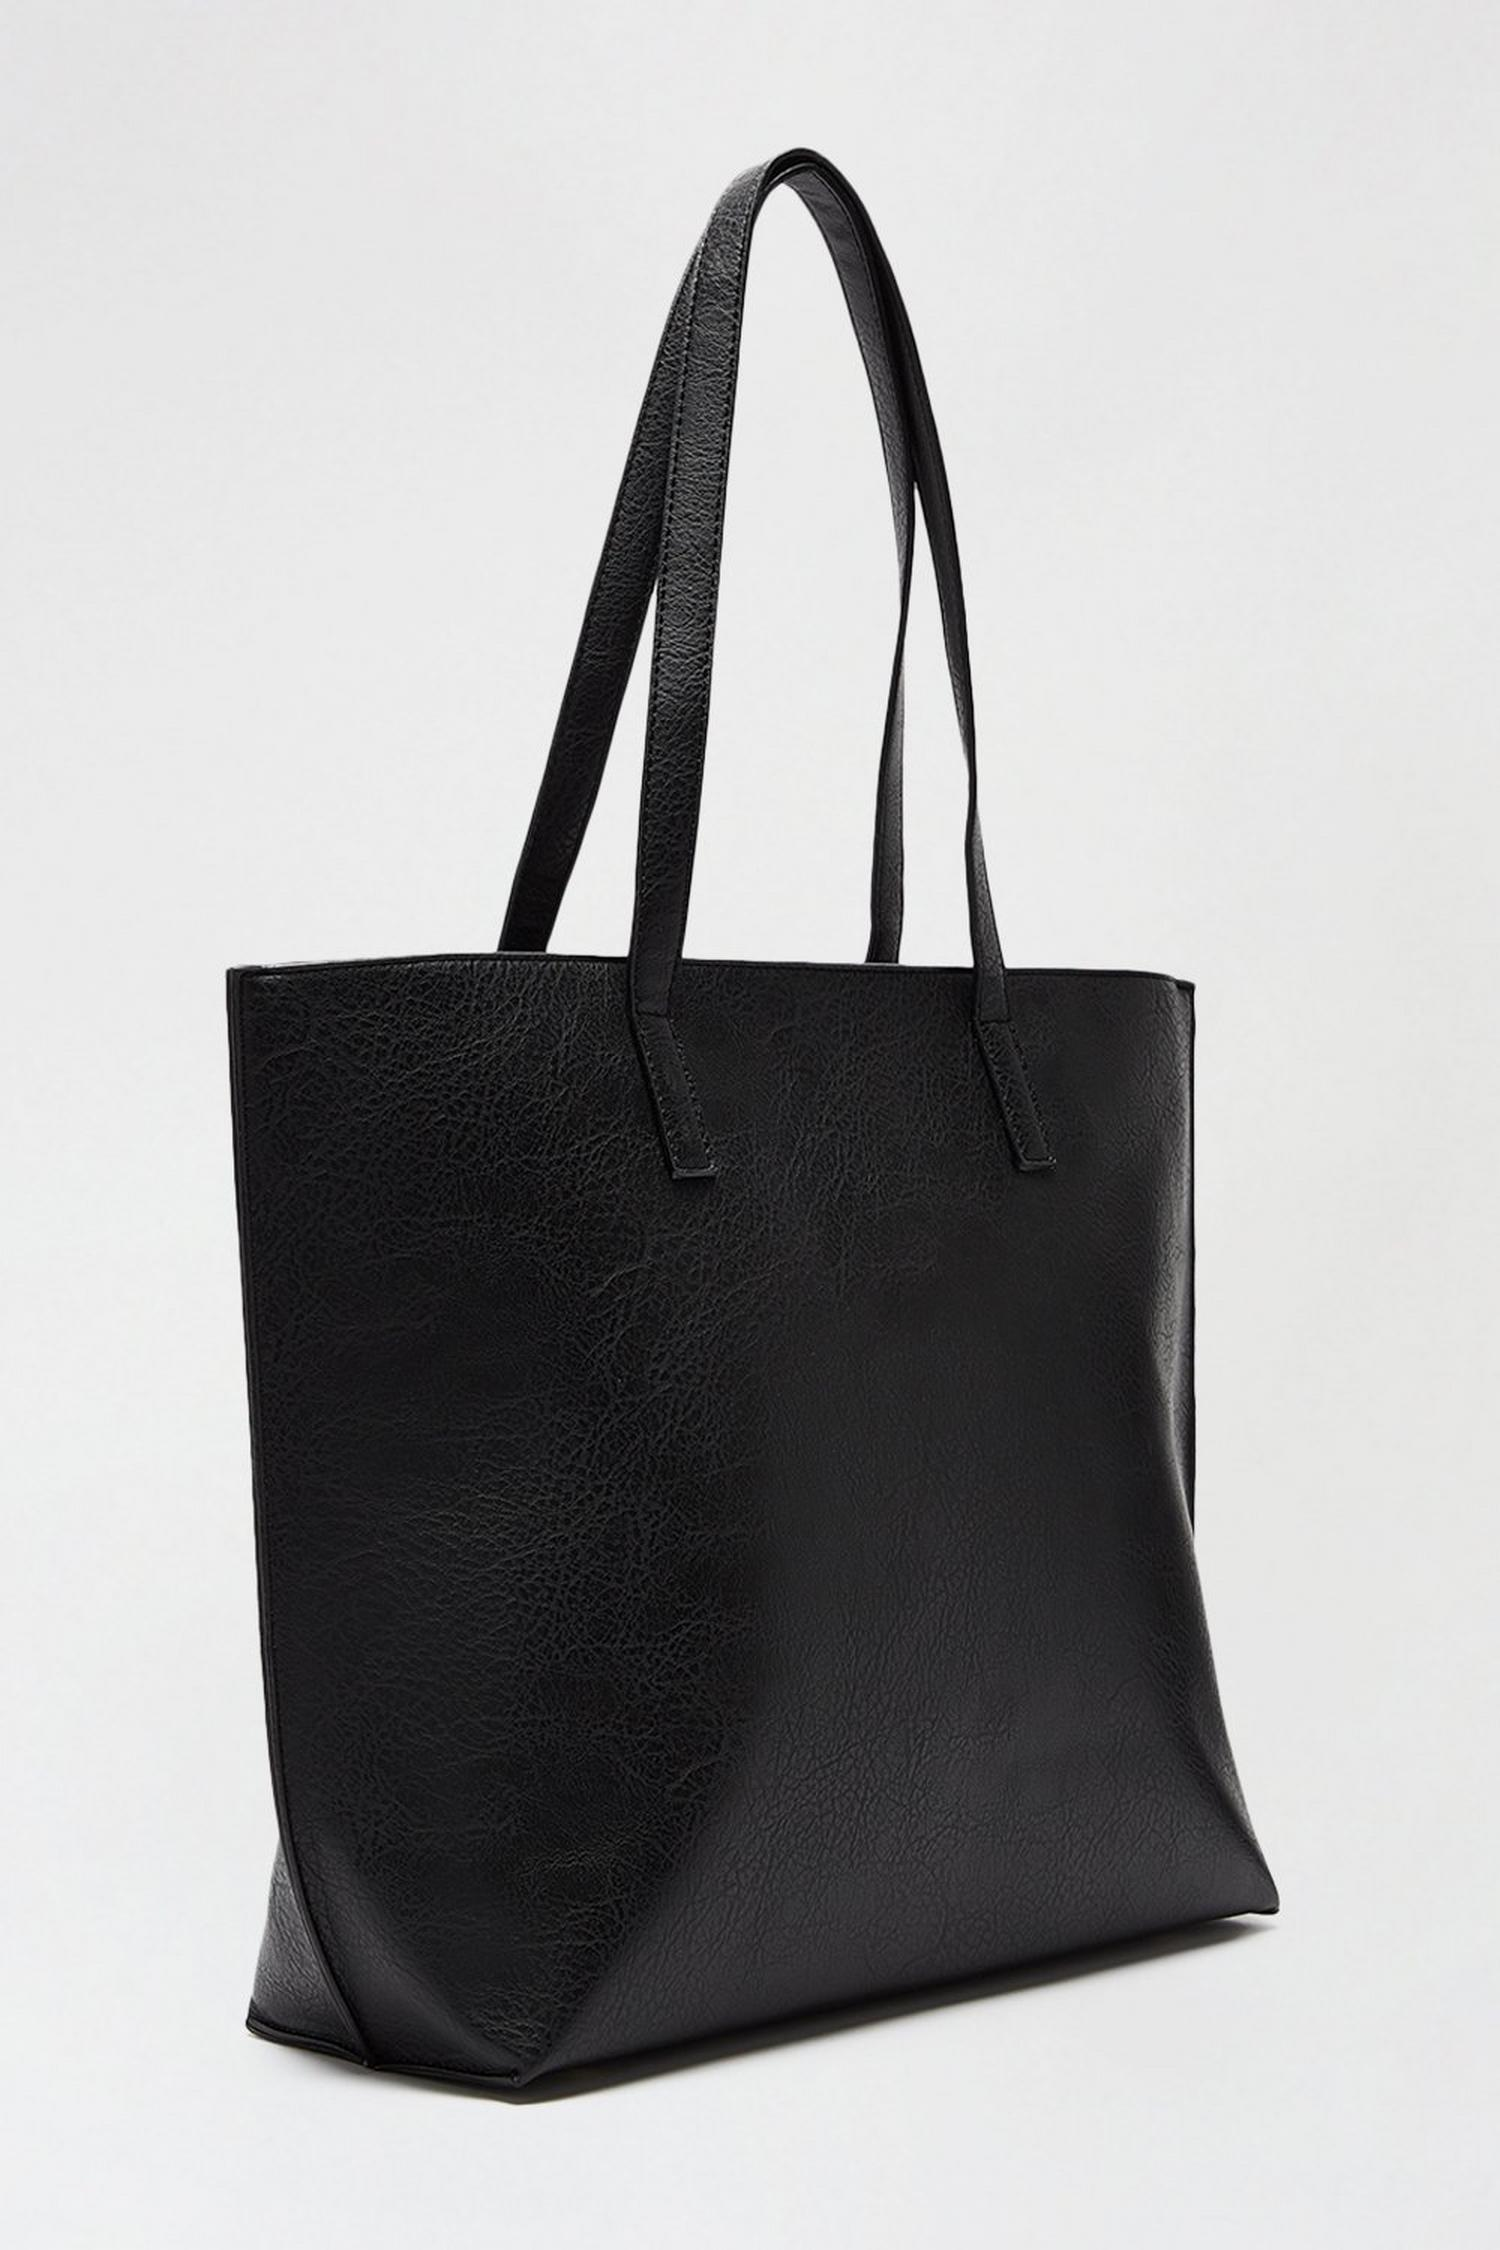 105 Black Shopper Bag image number 2